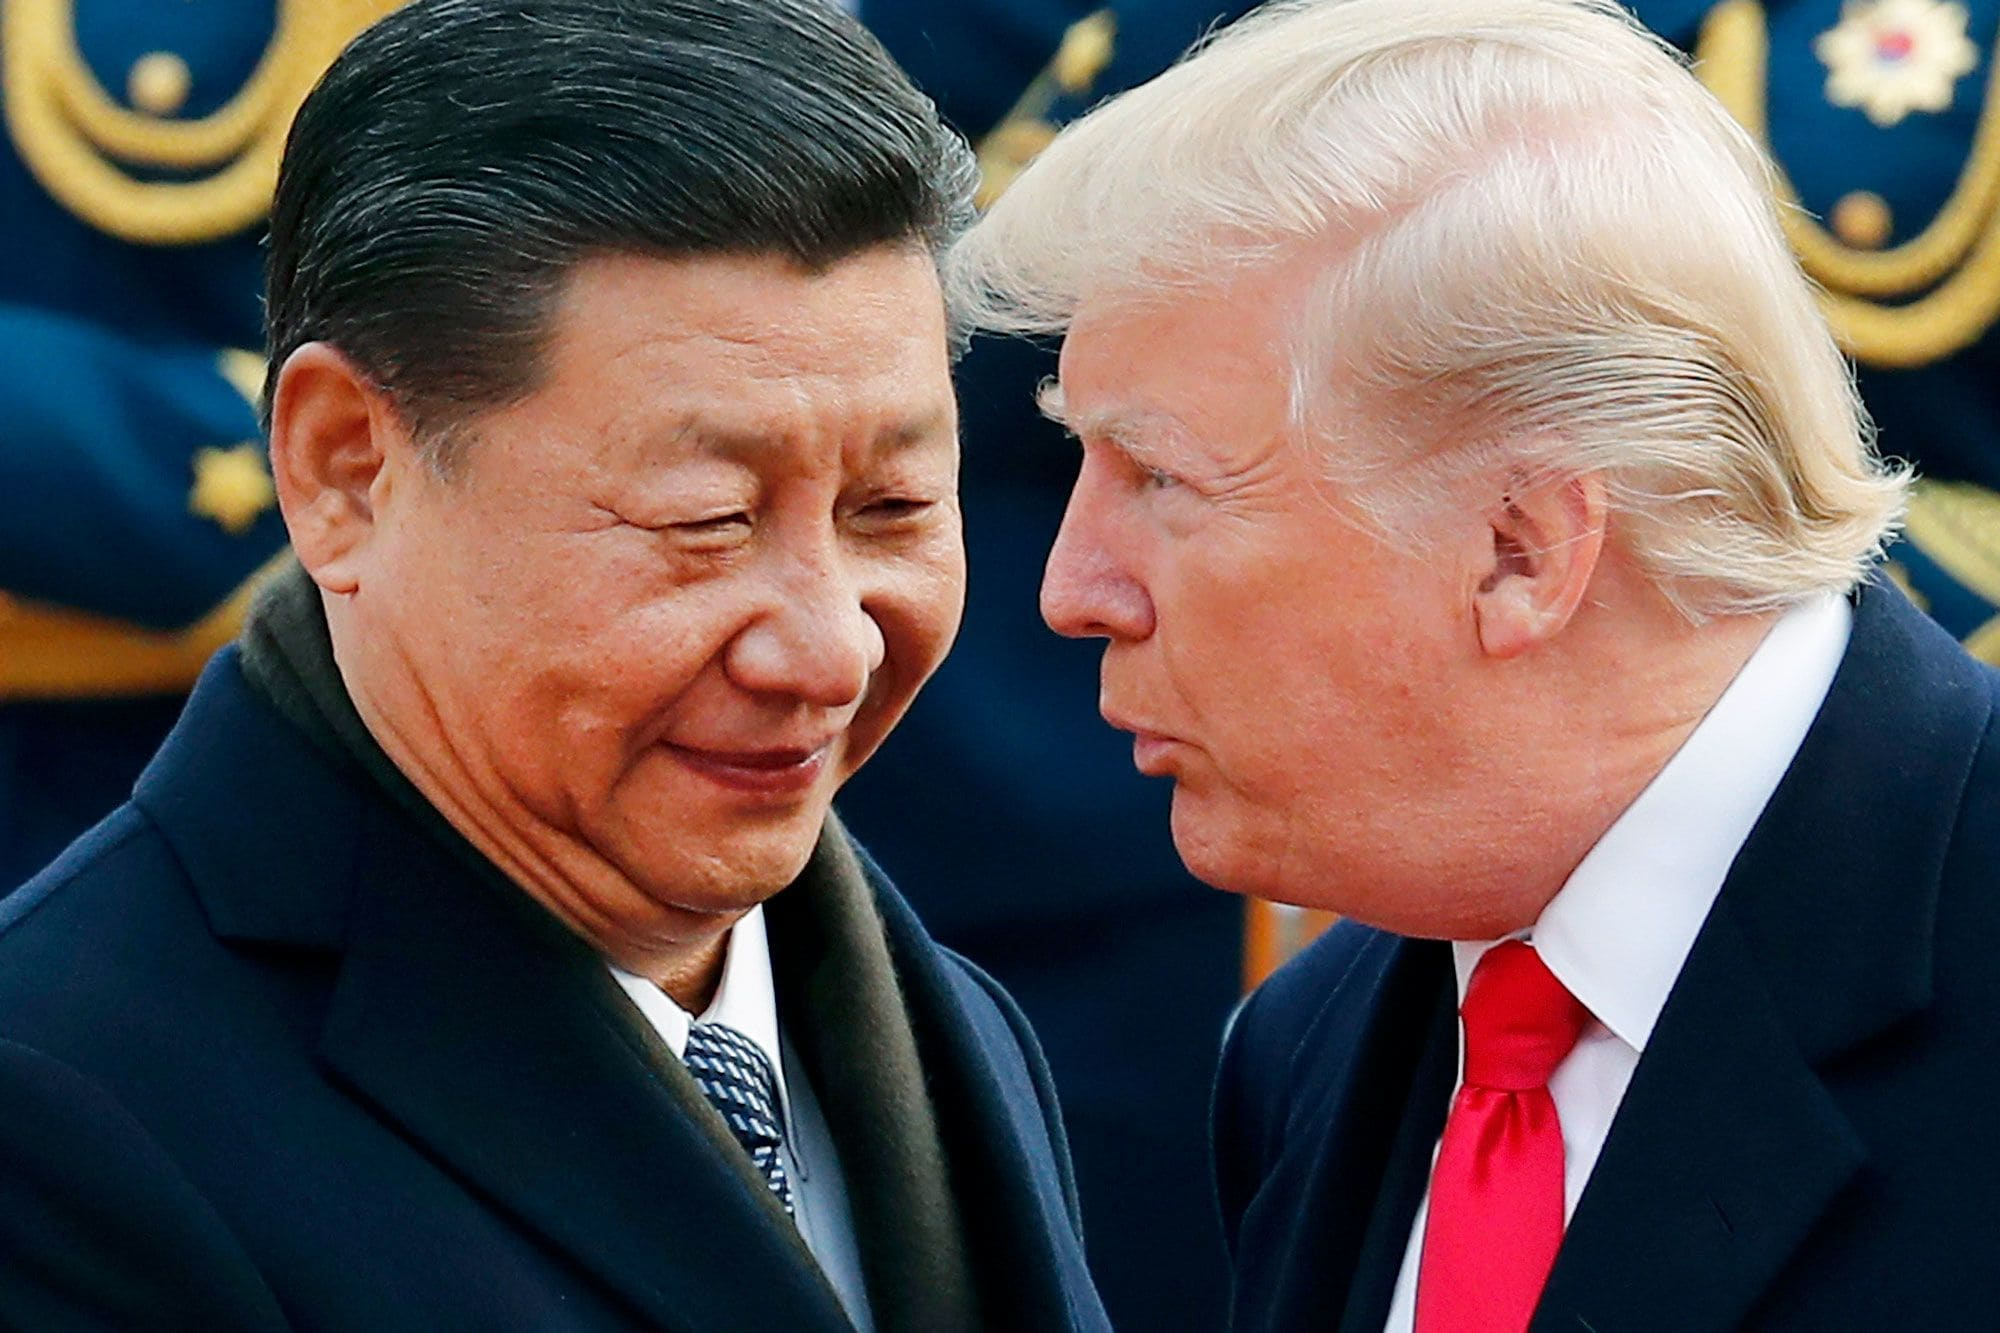 Donald Trump says No Meeting with Chinese President Xi Ahead of Trade War Deadline